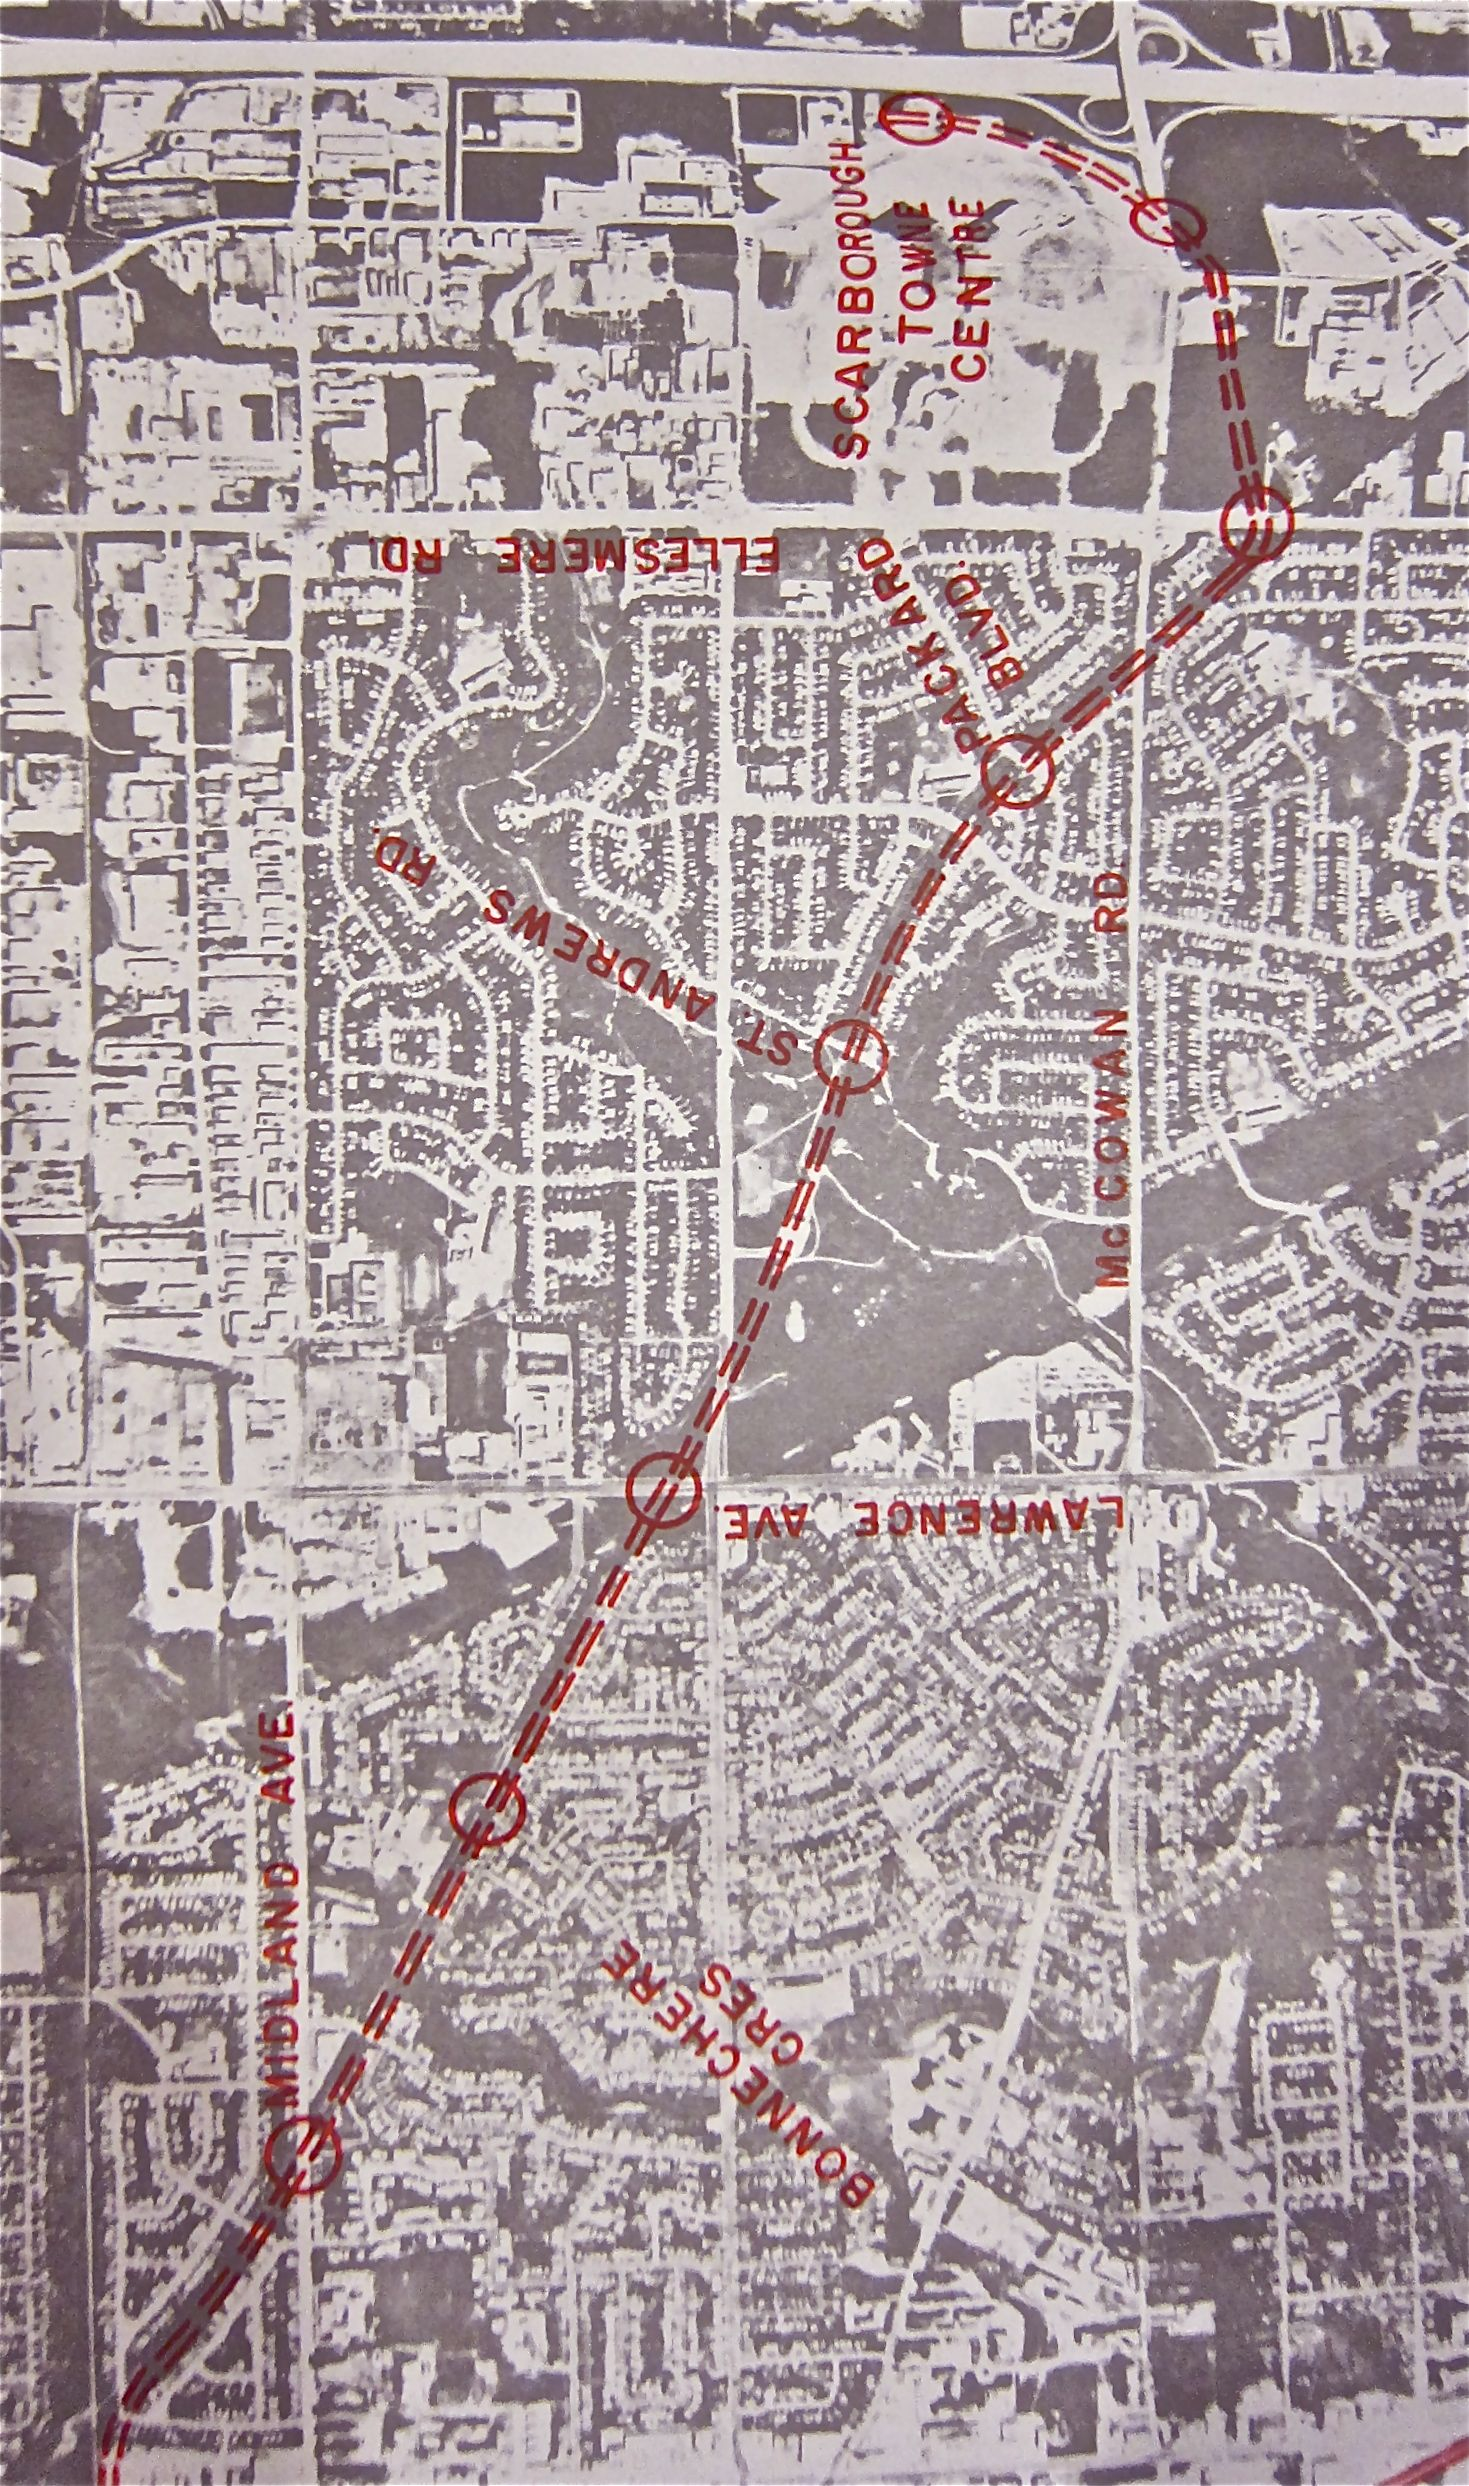 The original Scarborough light-rail proposal used the old Canadian Northern Orono subdivision (a plan killed when it ran into opposition that could literally be called Not In My Back Yard). There's a strong chance the original  and relatively inexpensive subway idea also used this route, though we'll never know without the lost report.